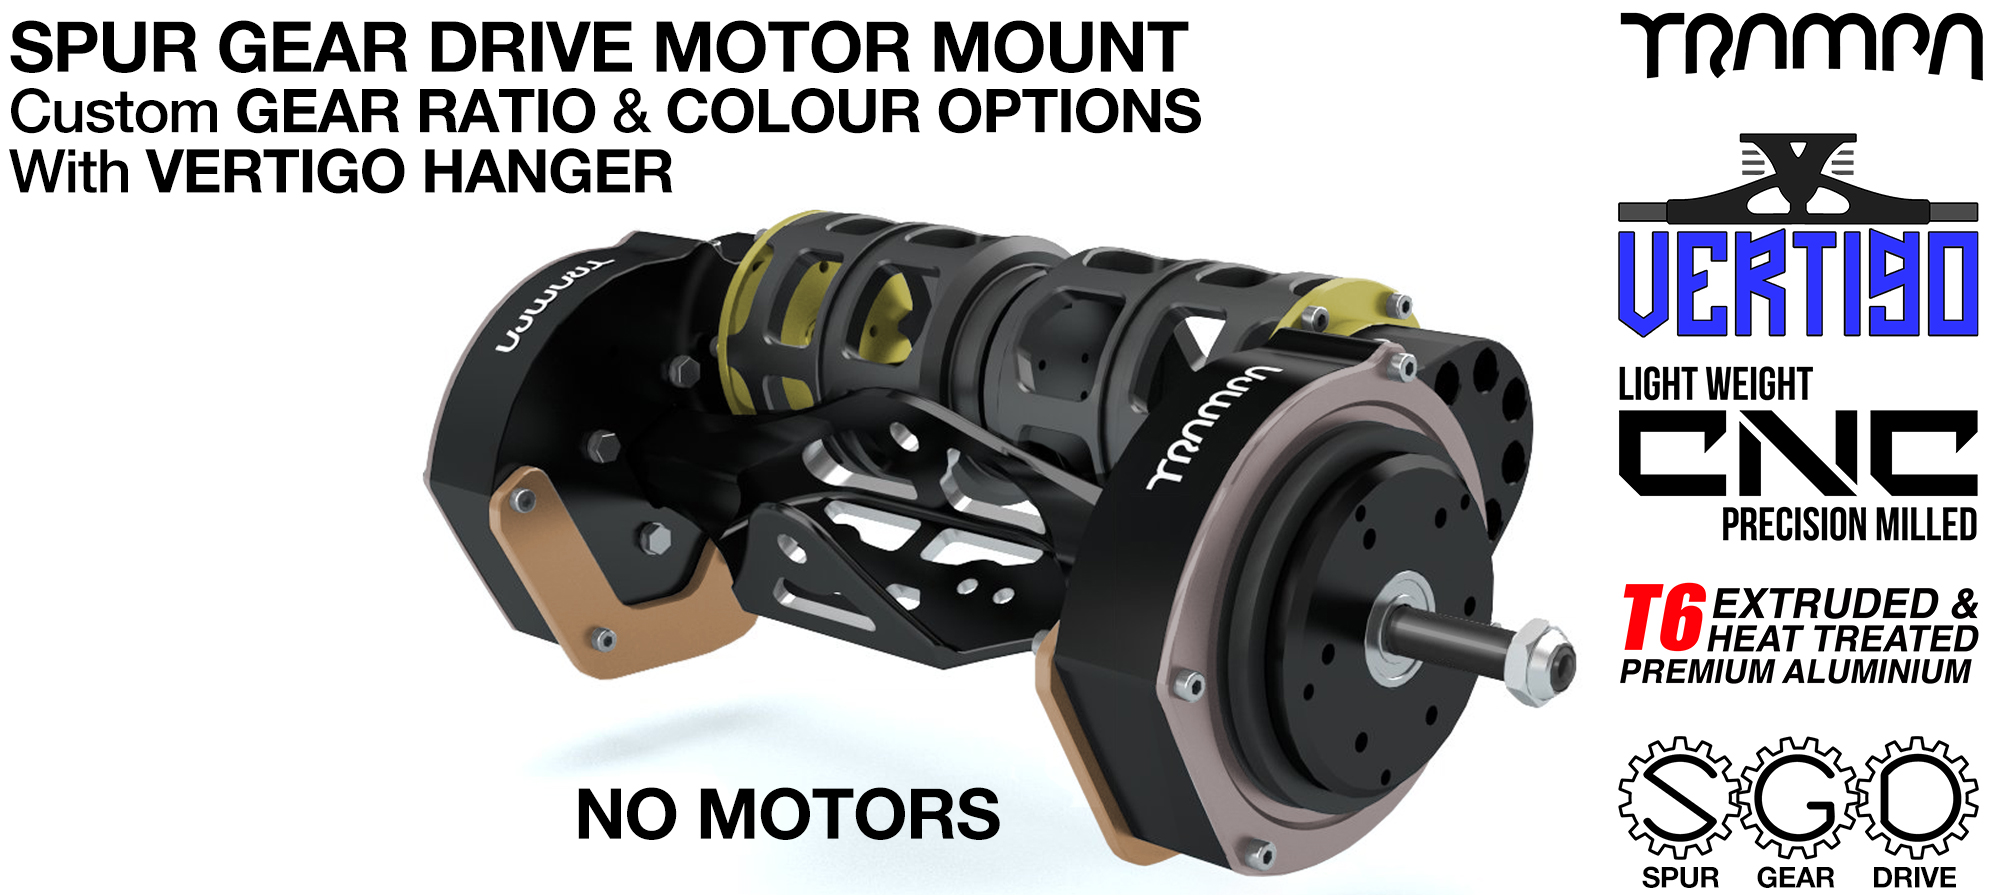 Mountainboard EXTERNAL Spur Gear Drive TWIN Motor Mounts & VERTIGO Hanger